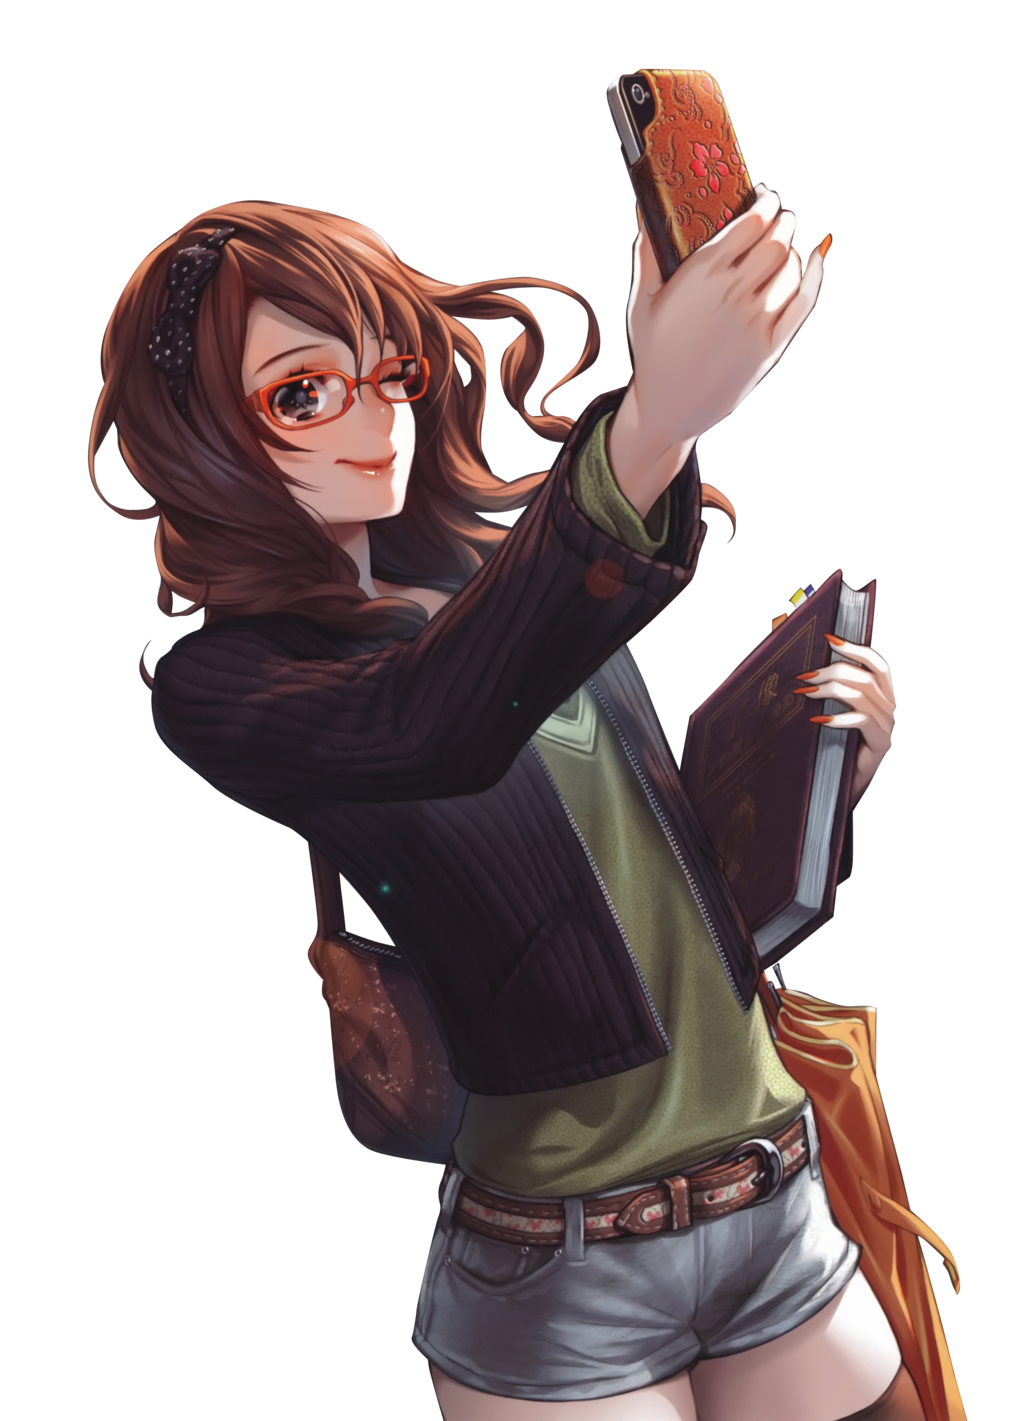 Anime Brown Hair Glasses Girl